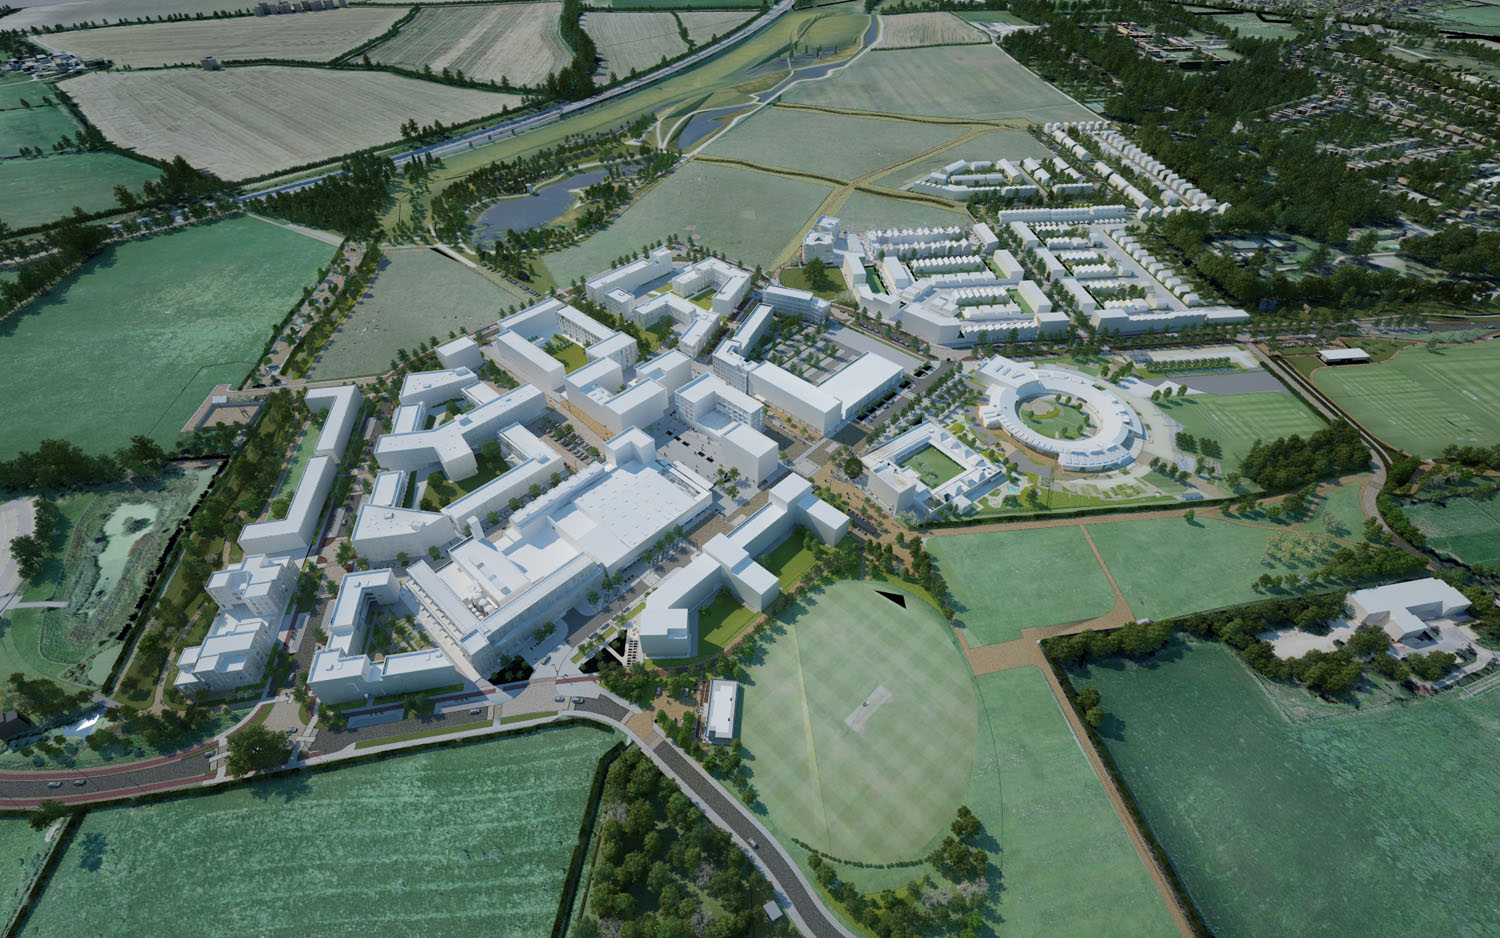 aecom birds eye 3D - University of Cambridge Primary School by Marks Barfield Architects